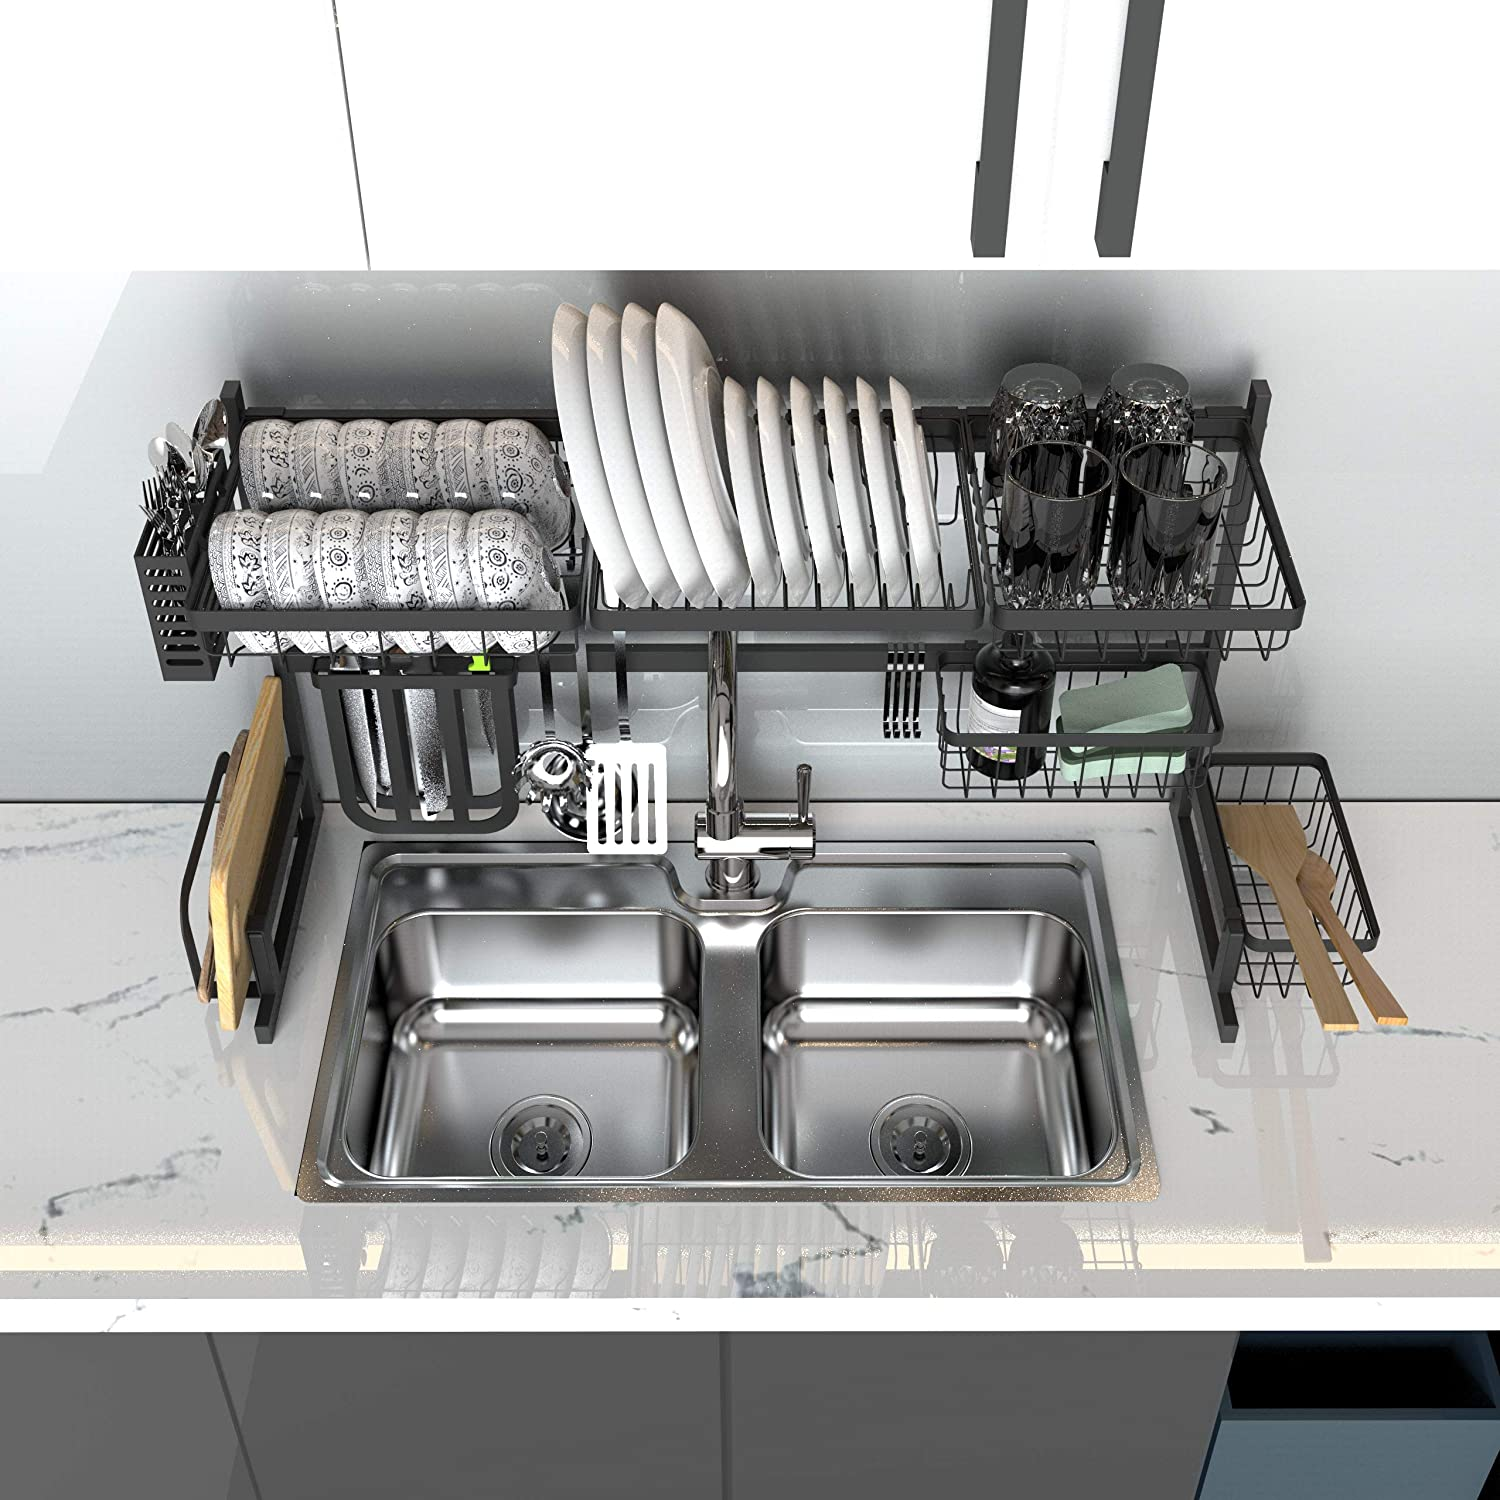 Stainless Steel Paint Kitchen Drain Dish Racks Sink Size/≤32.5in Dish Rack Drainer Over The Sink with 10 Utility Hooks IGOKOTI Over Sink Dish Rack 2 Square Baskets for Kitchen Sink